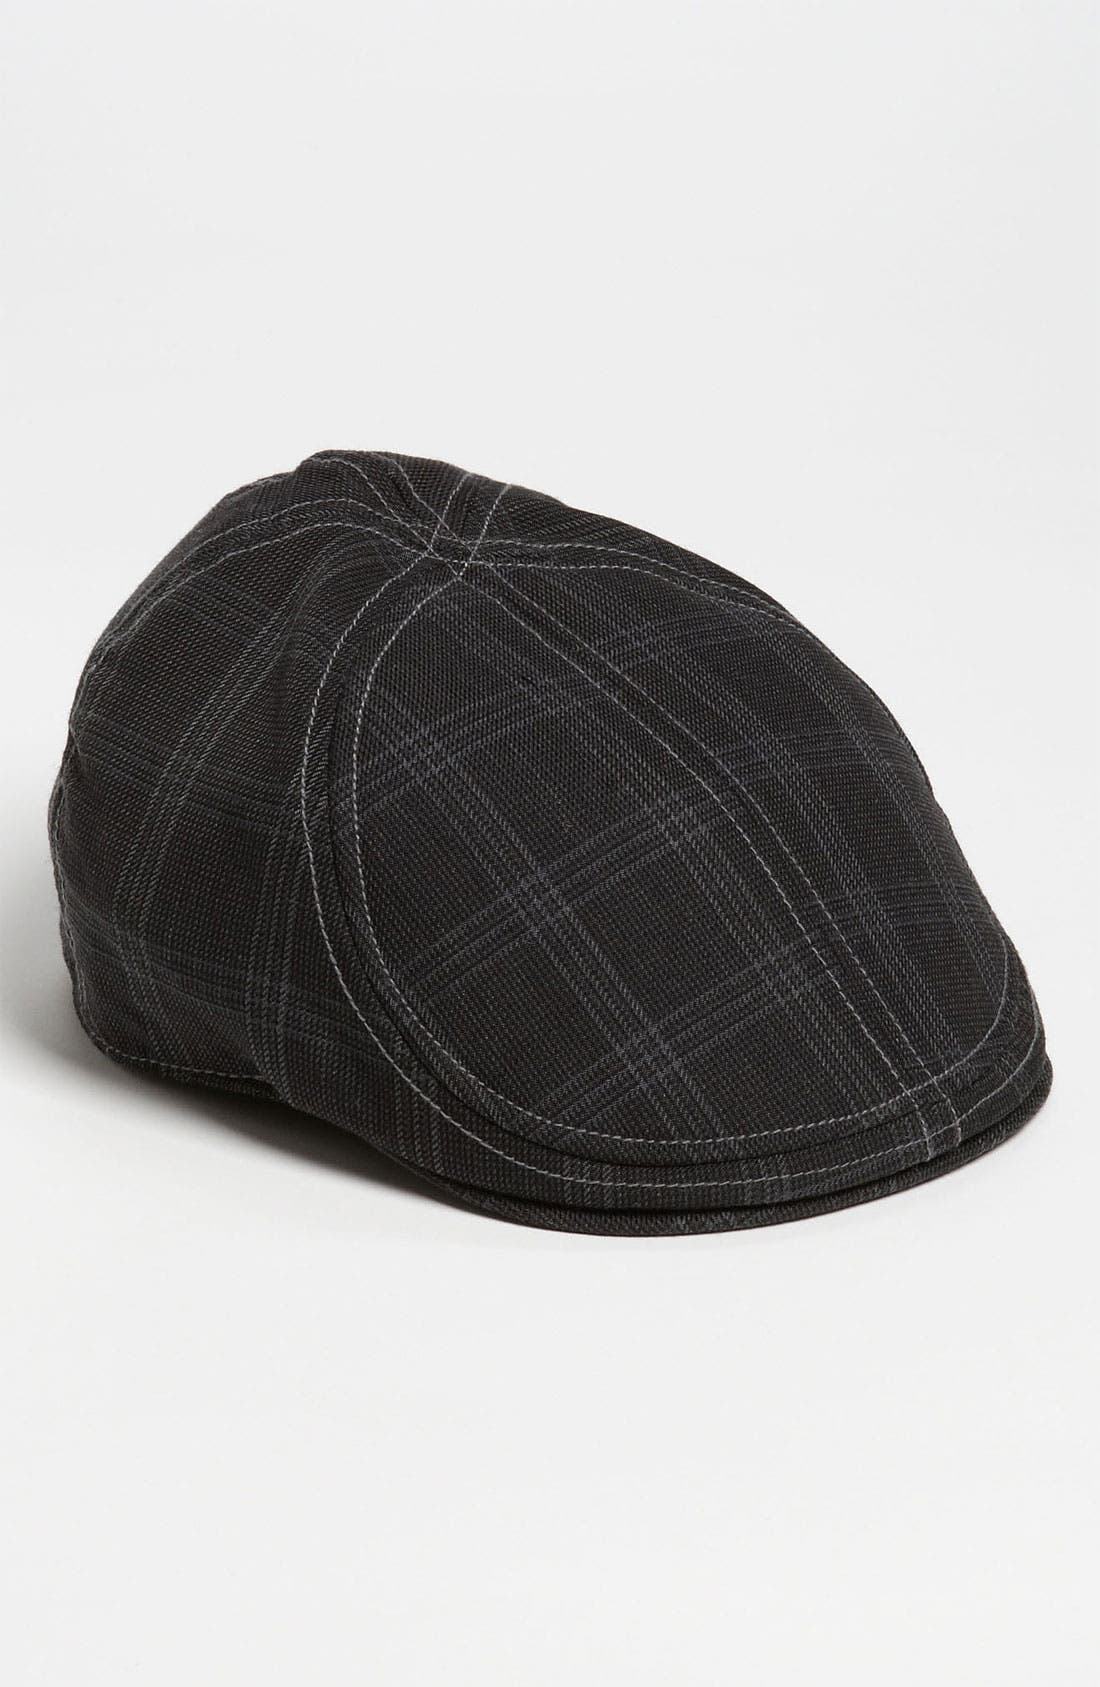 Alternate Image 1 Selected - Goorin Brothers 'Headlands Ivy' Driving Cap